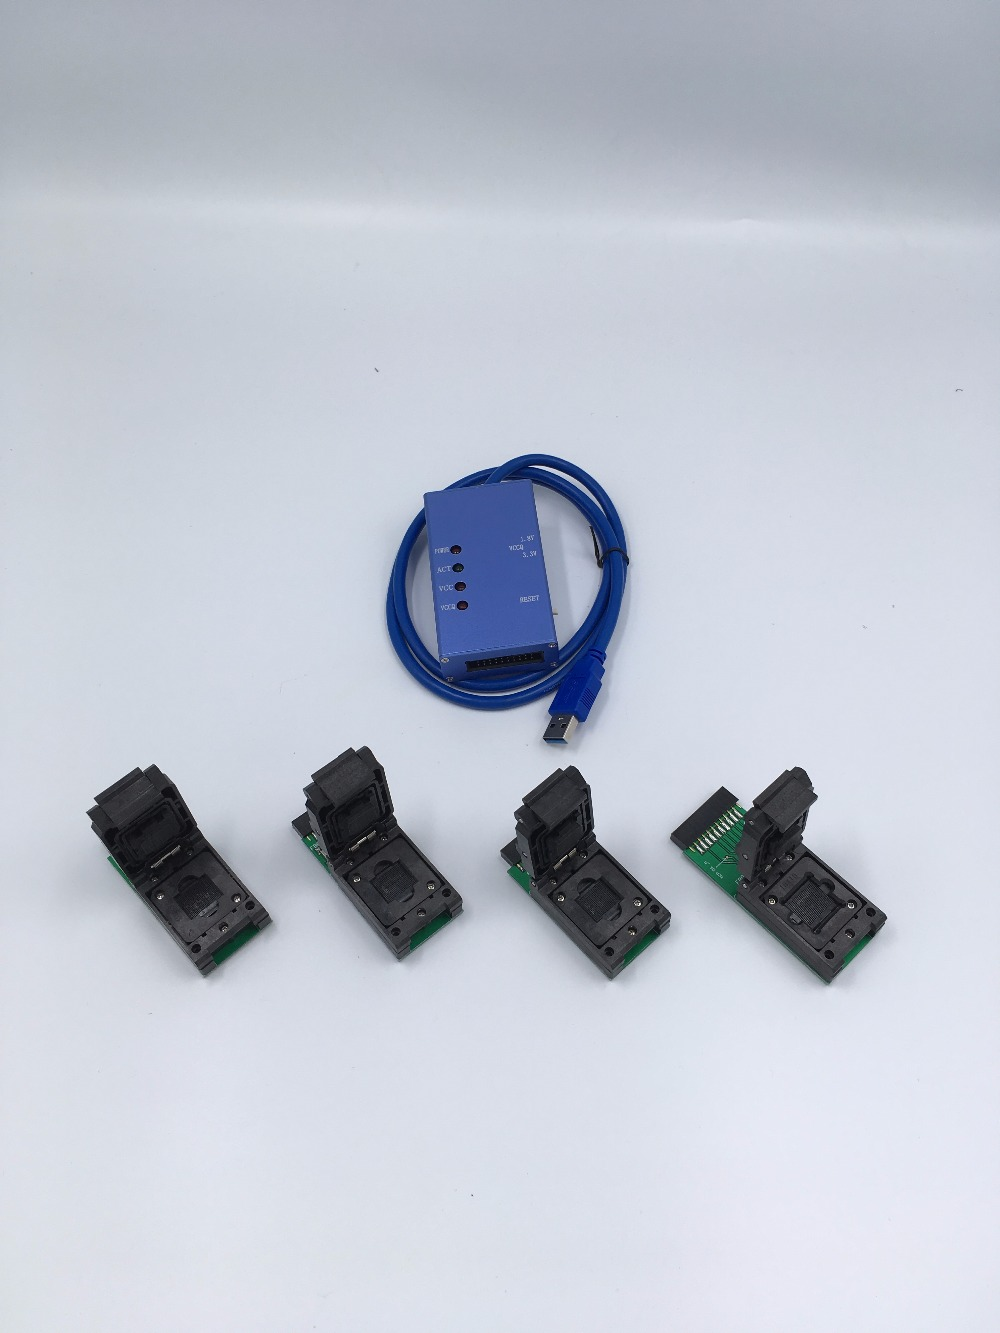 Universal test socket EMMC153 169 eMCP162 186 emcp221 529 support many different eMMC emcp chips android phone data recovery in Connectors from Lights Lighting